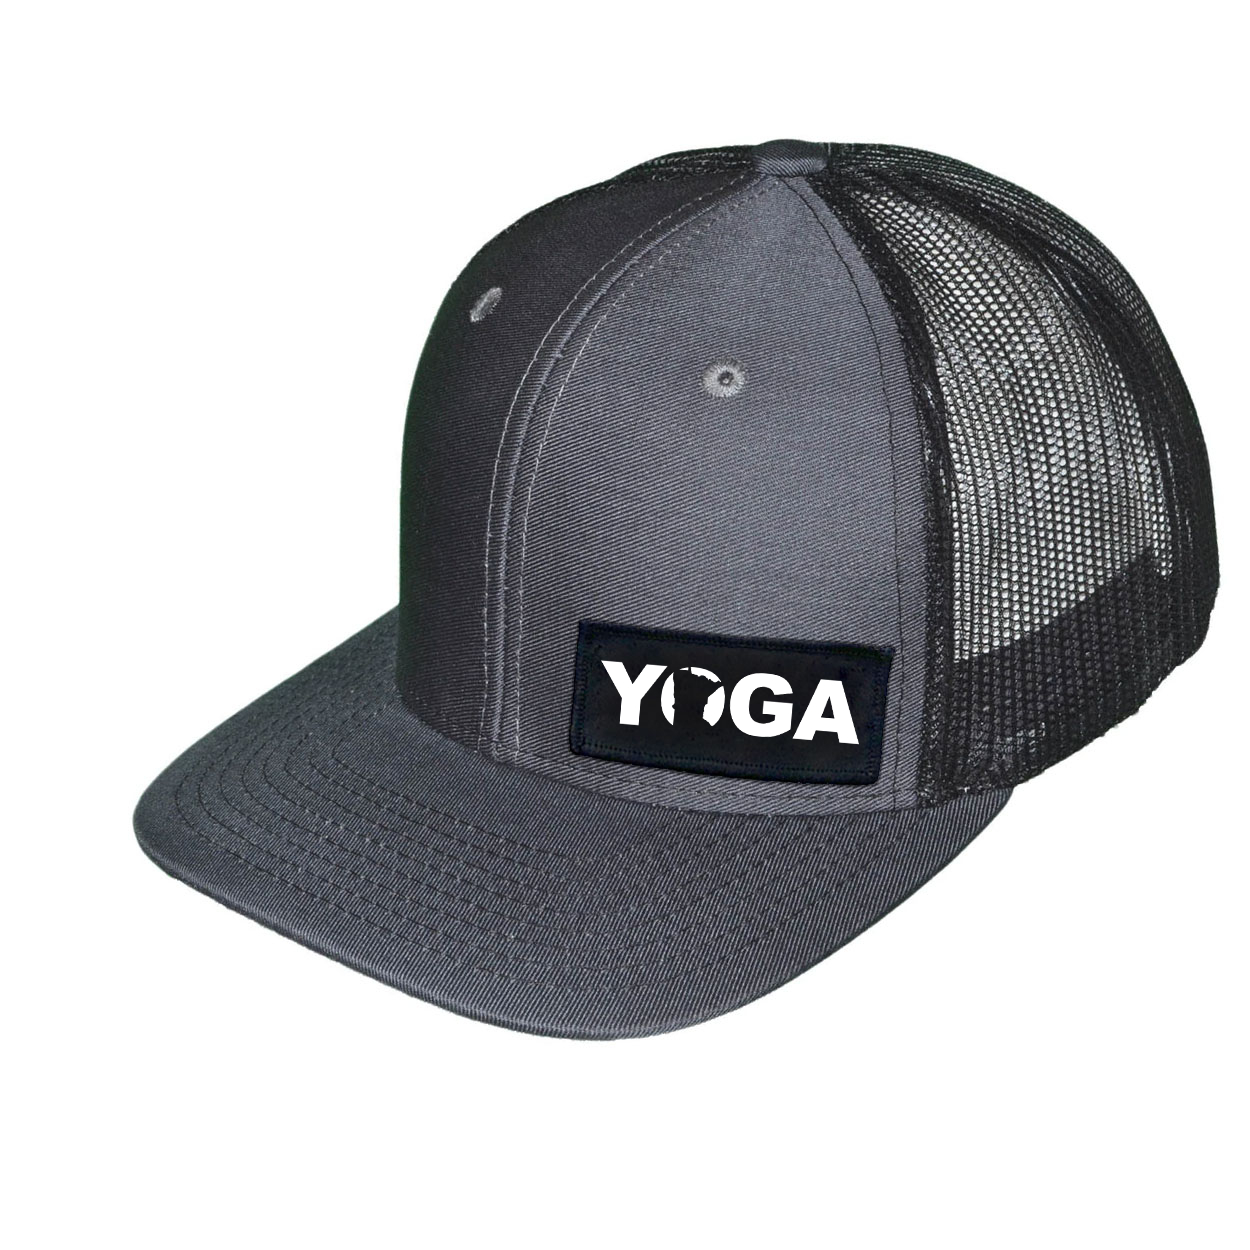 Yoga Minnesota Night Out Woven Patch Snapback Trucker Hat Dark Gray/Black (White Logo)